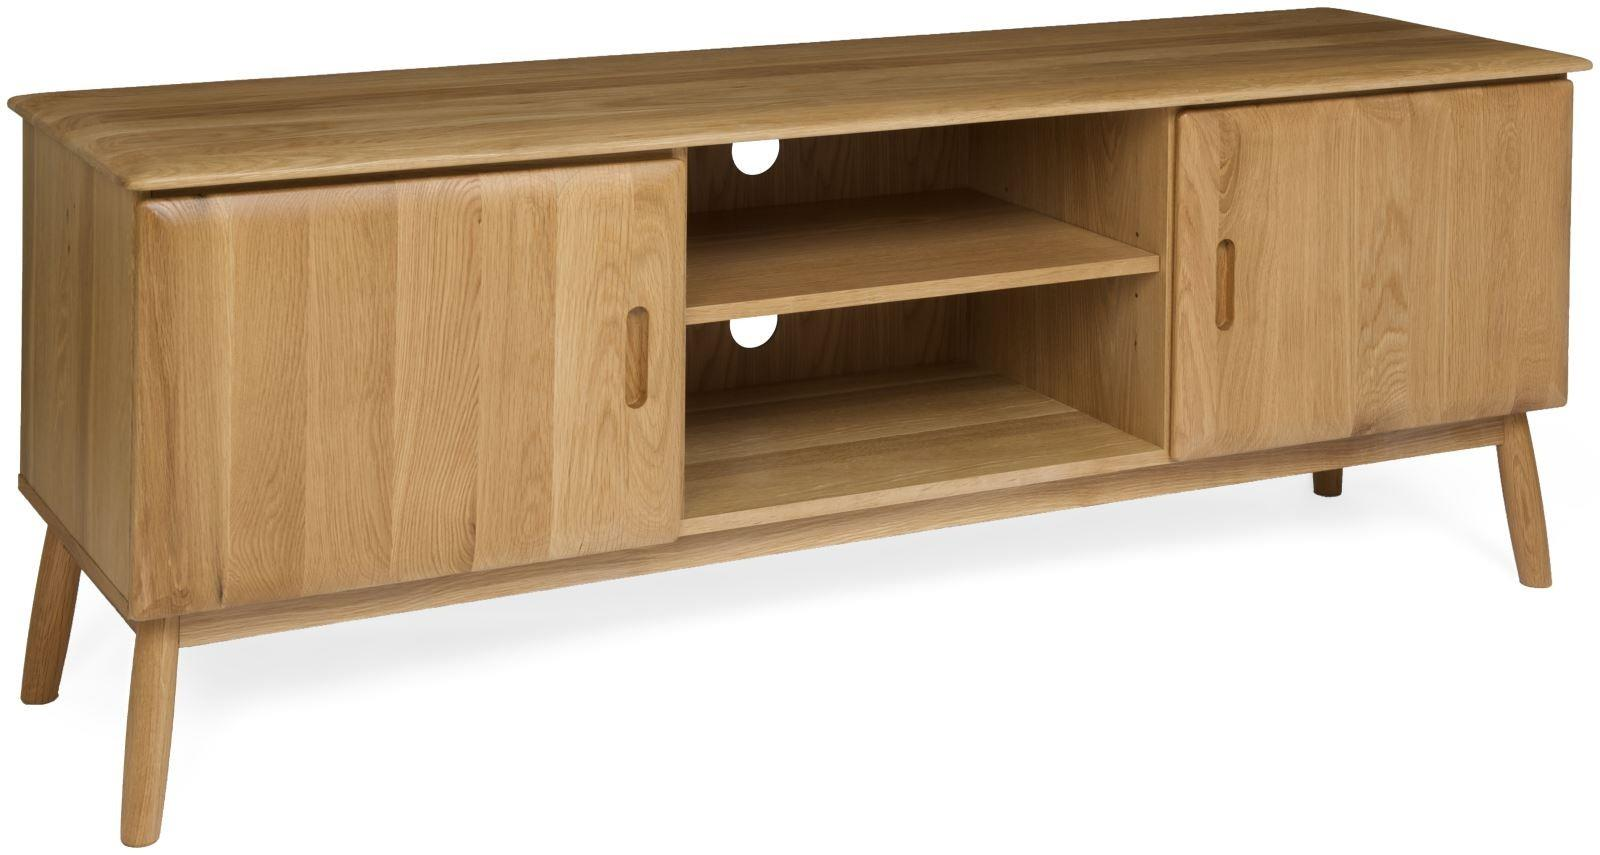 MALMO - Oak TV Cabinet with 2 doors